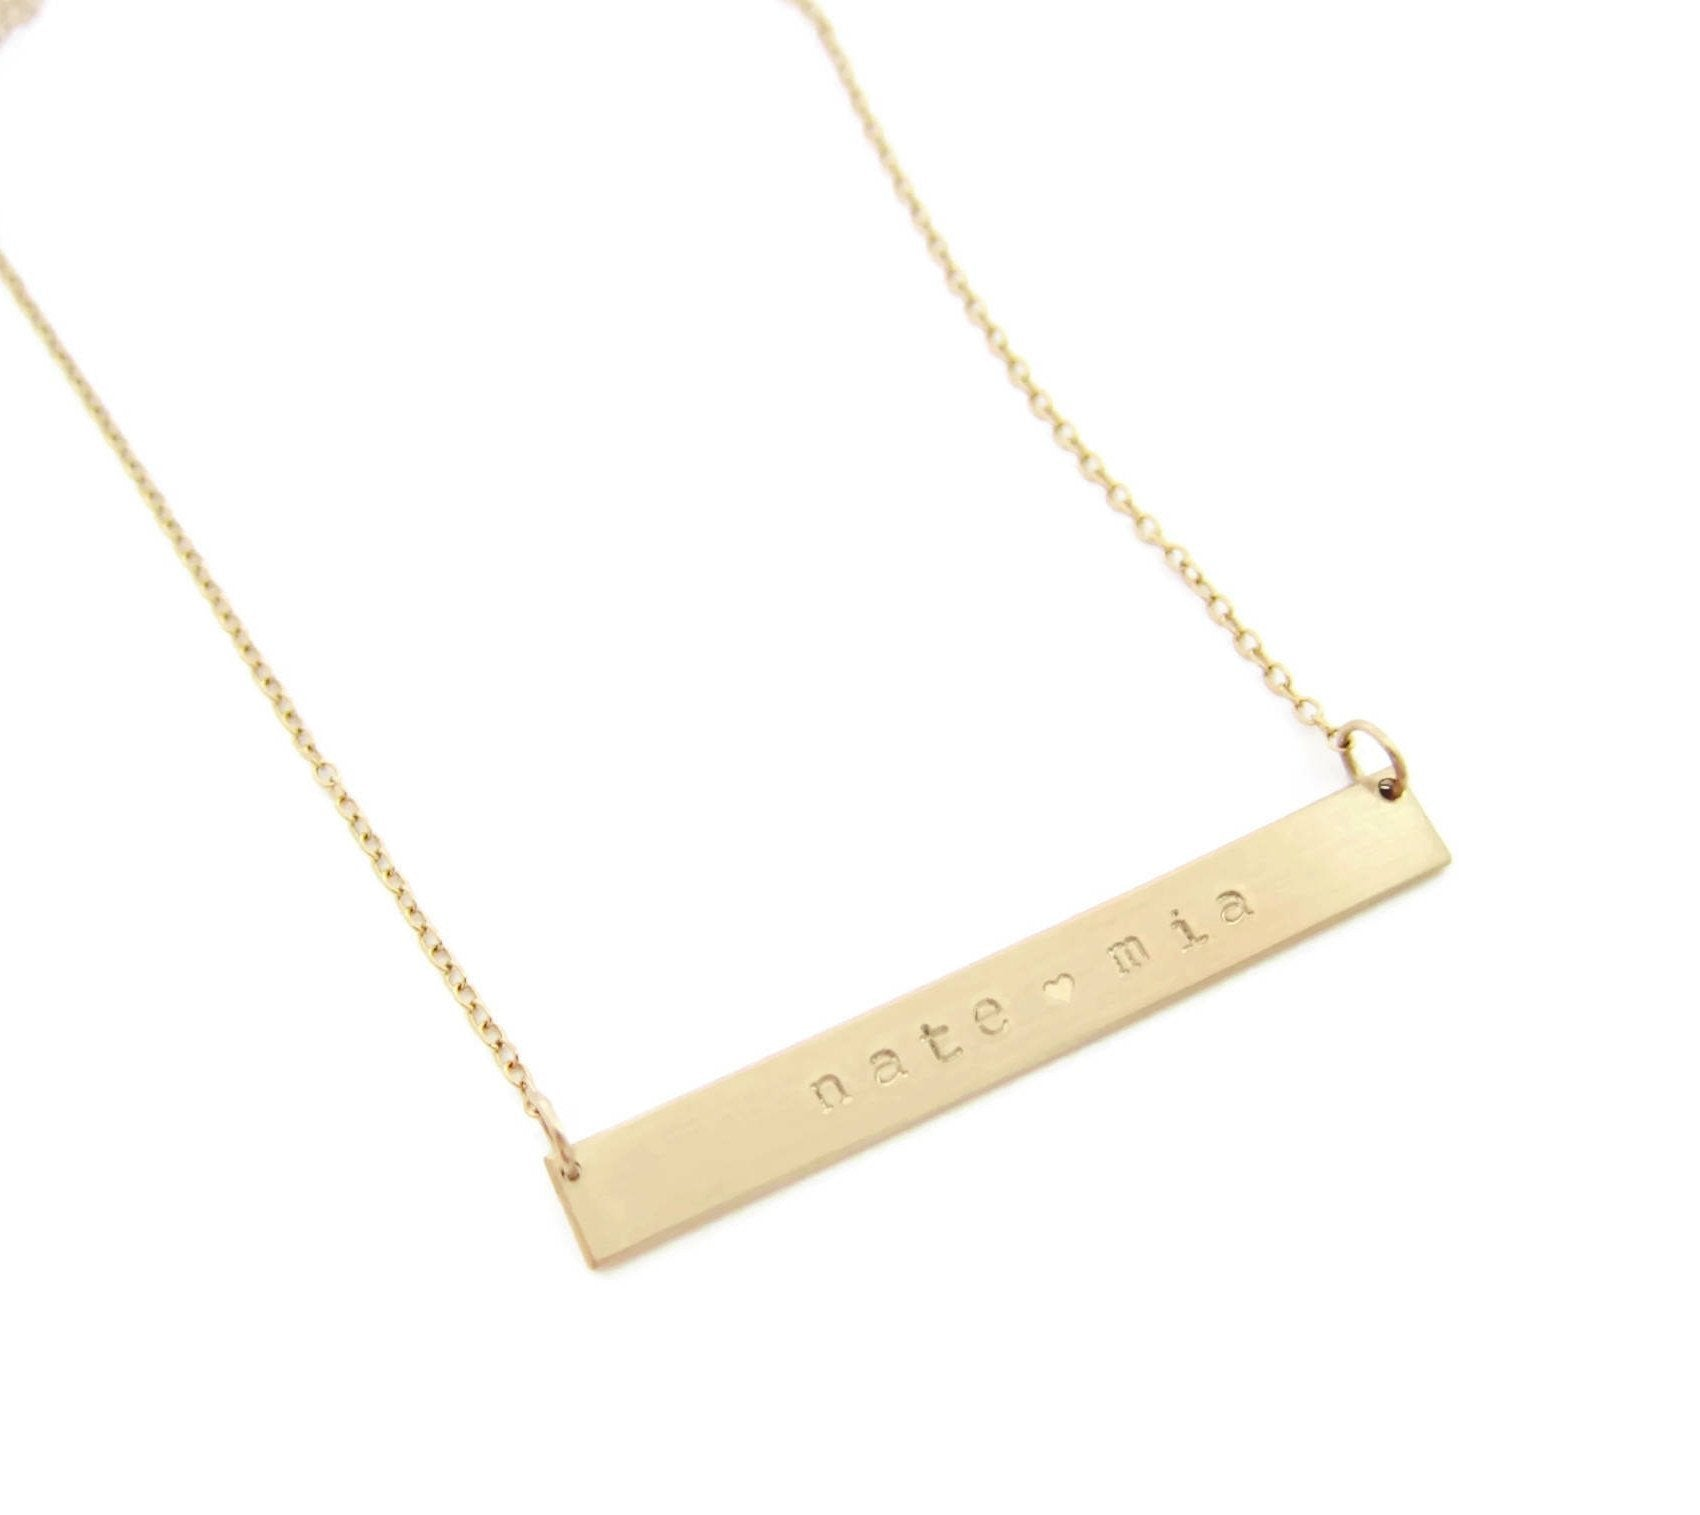 image junkie original julz name products necklace jewelry jewellery